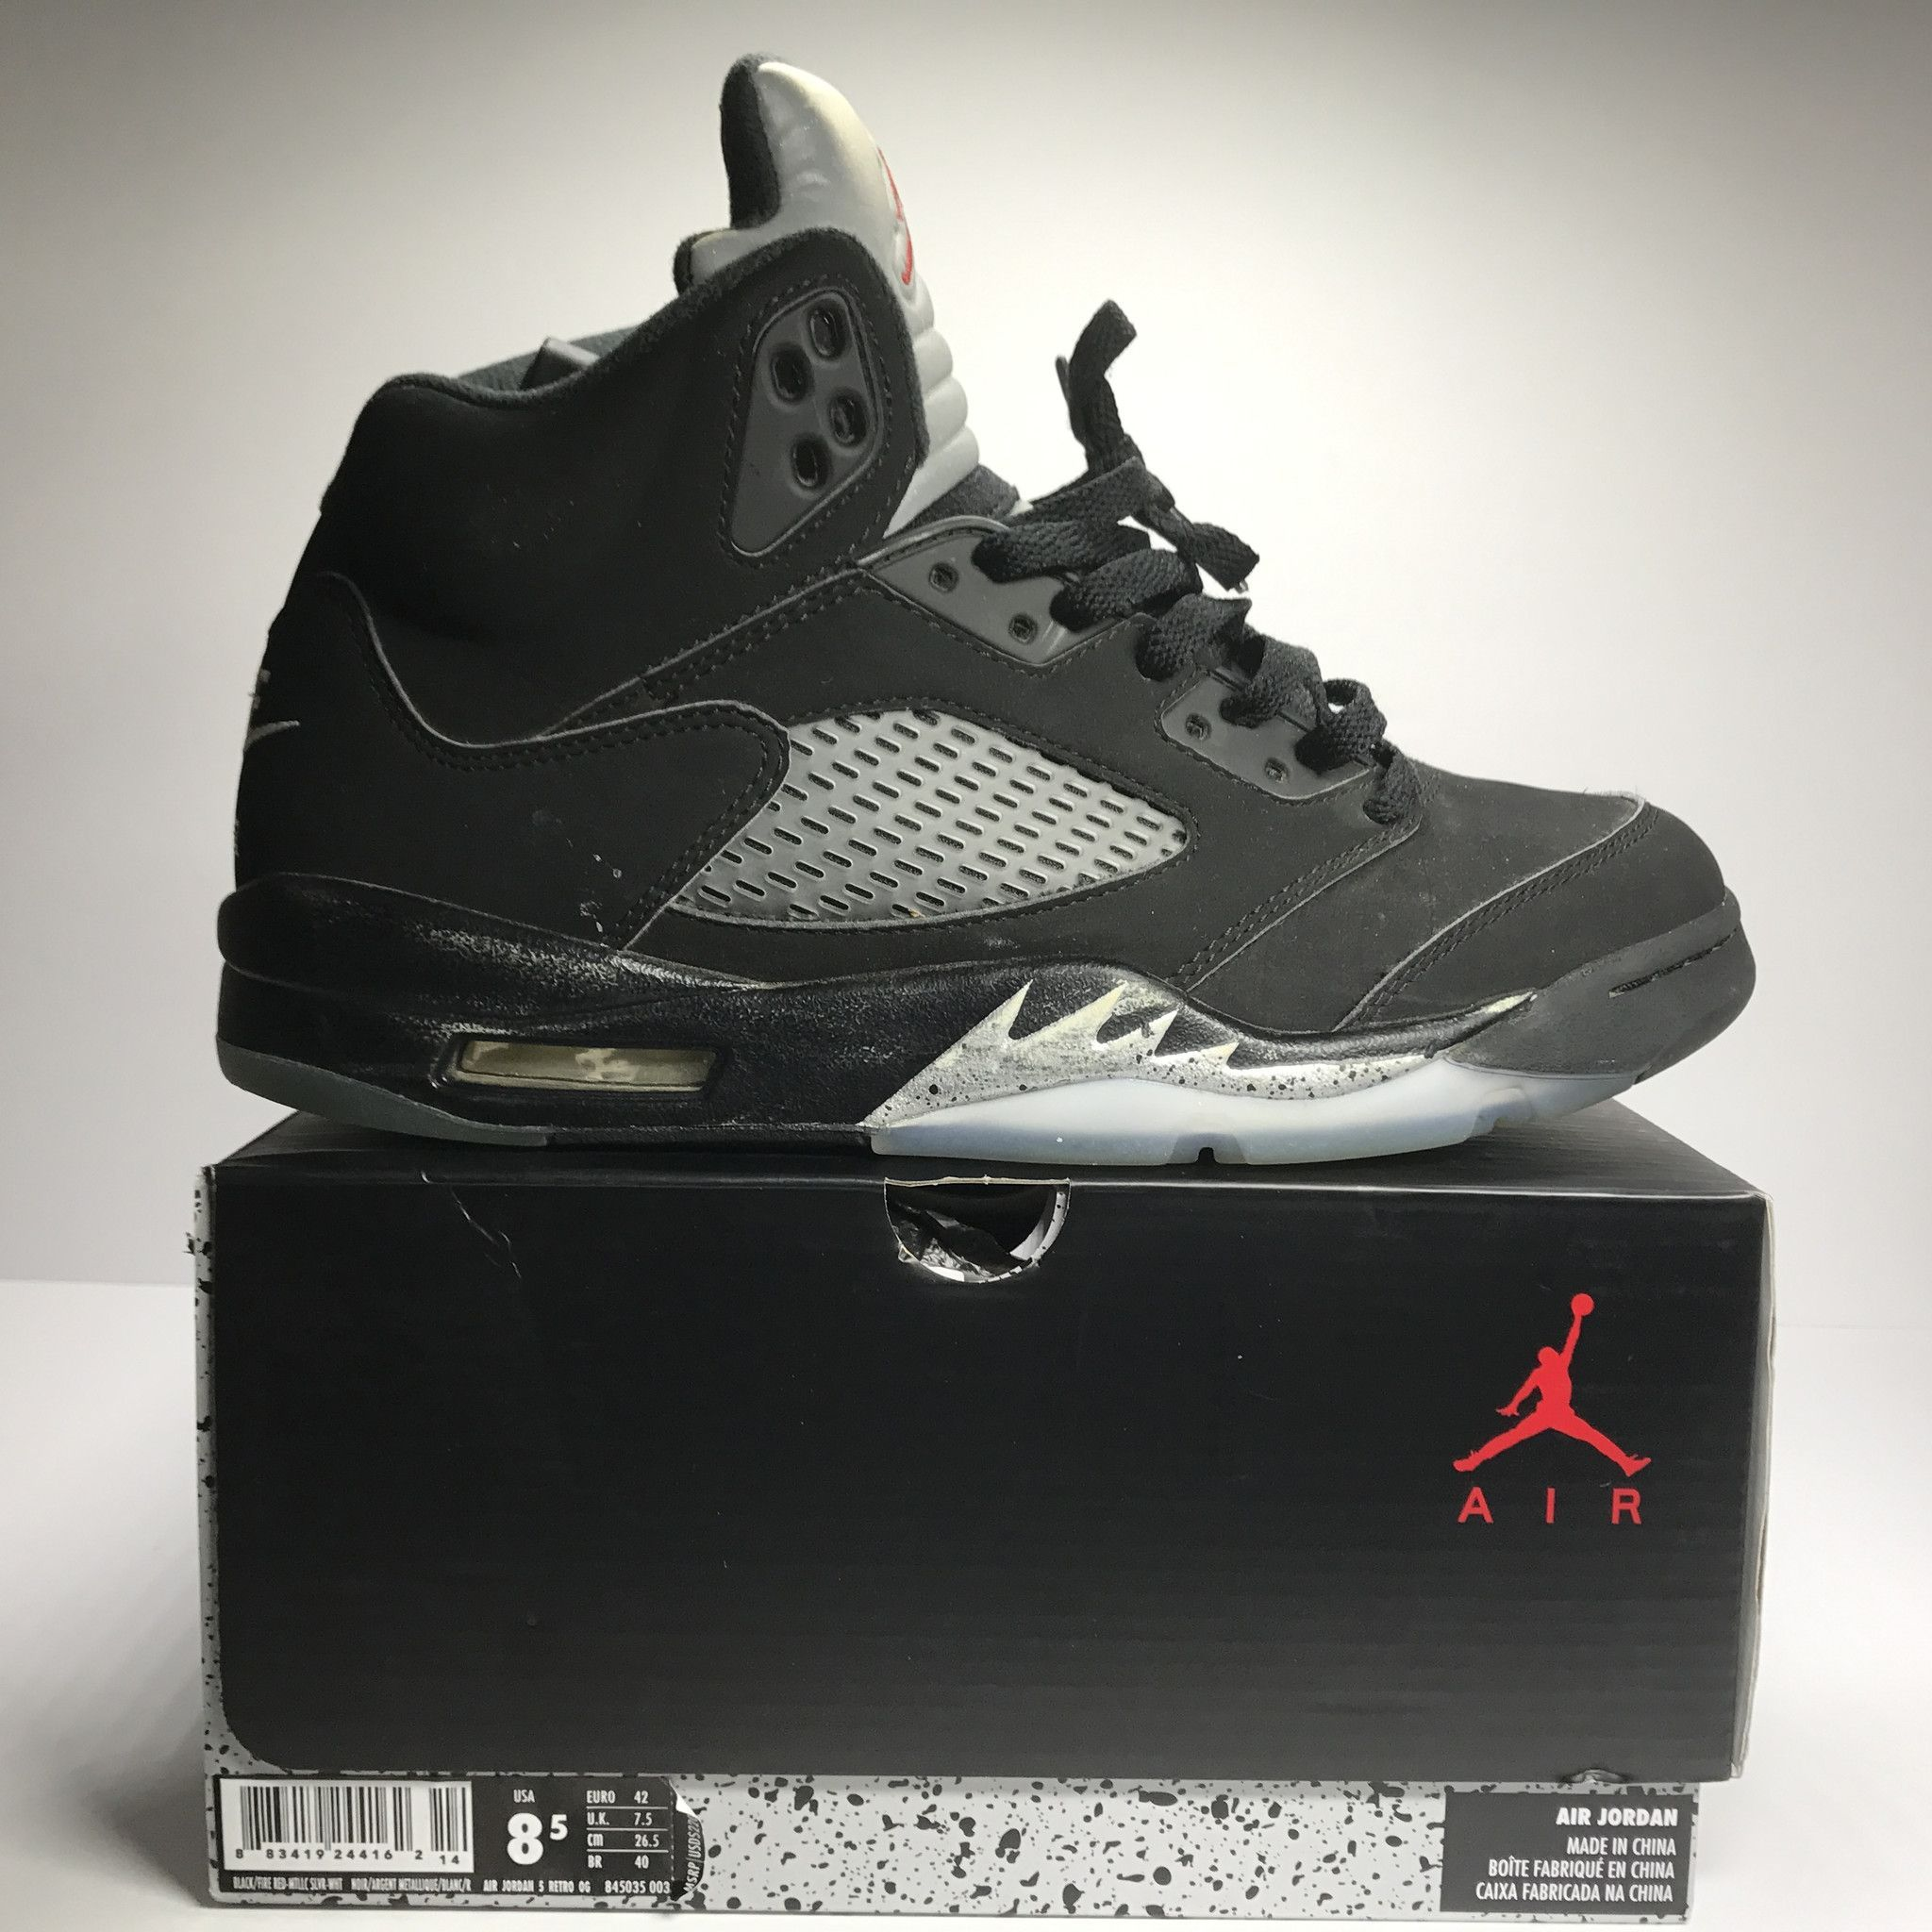 Nike Air Jordan 5 V Retro OG Metallic Black Size 8.5